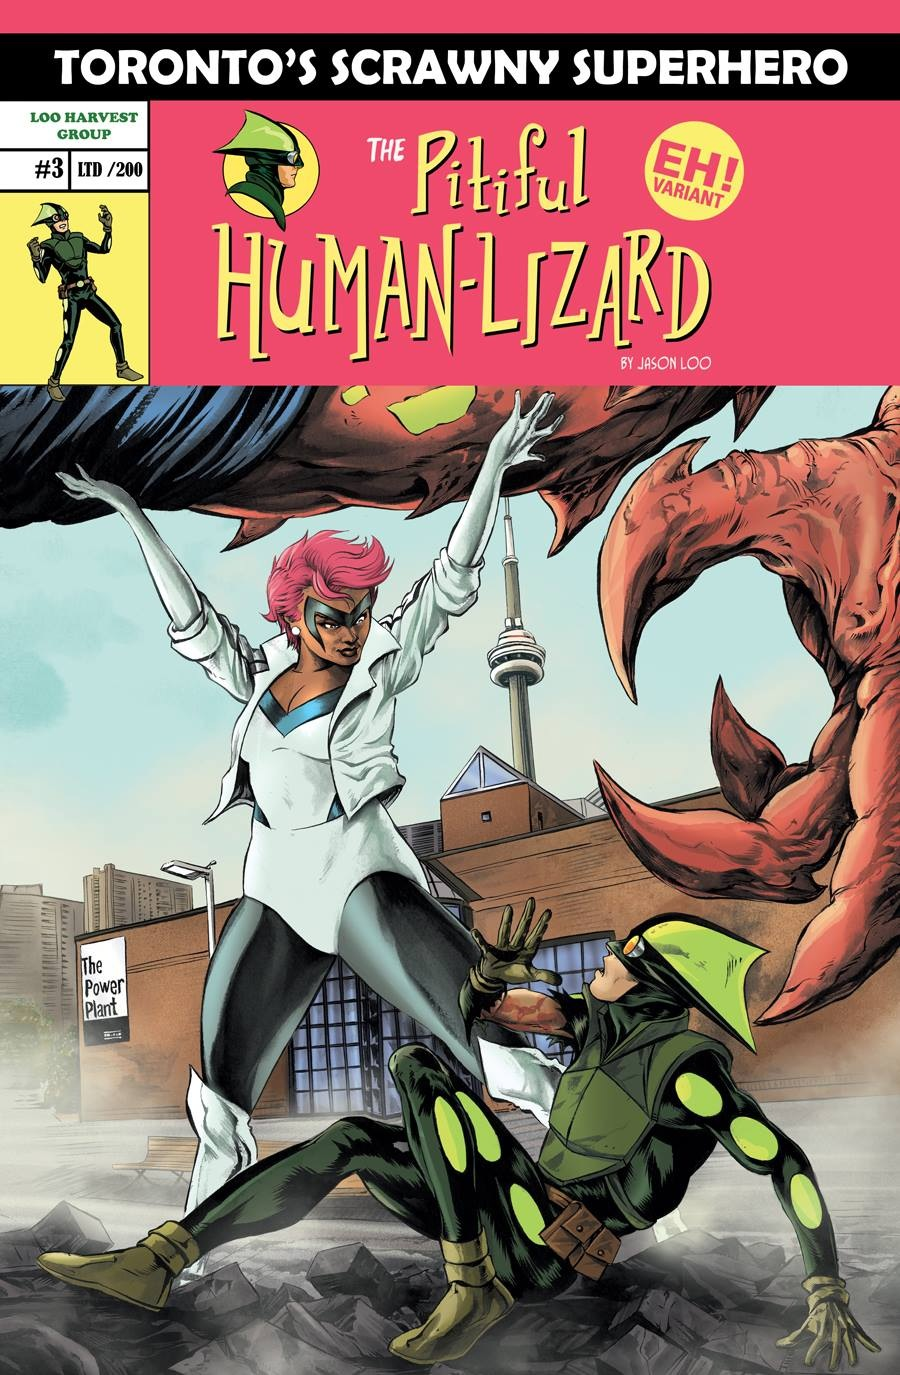 The Pitiful Human Lizard #1 'EH!' variant